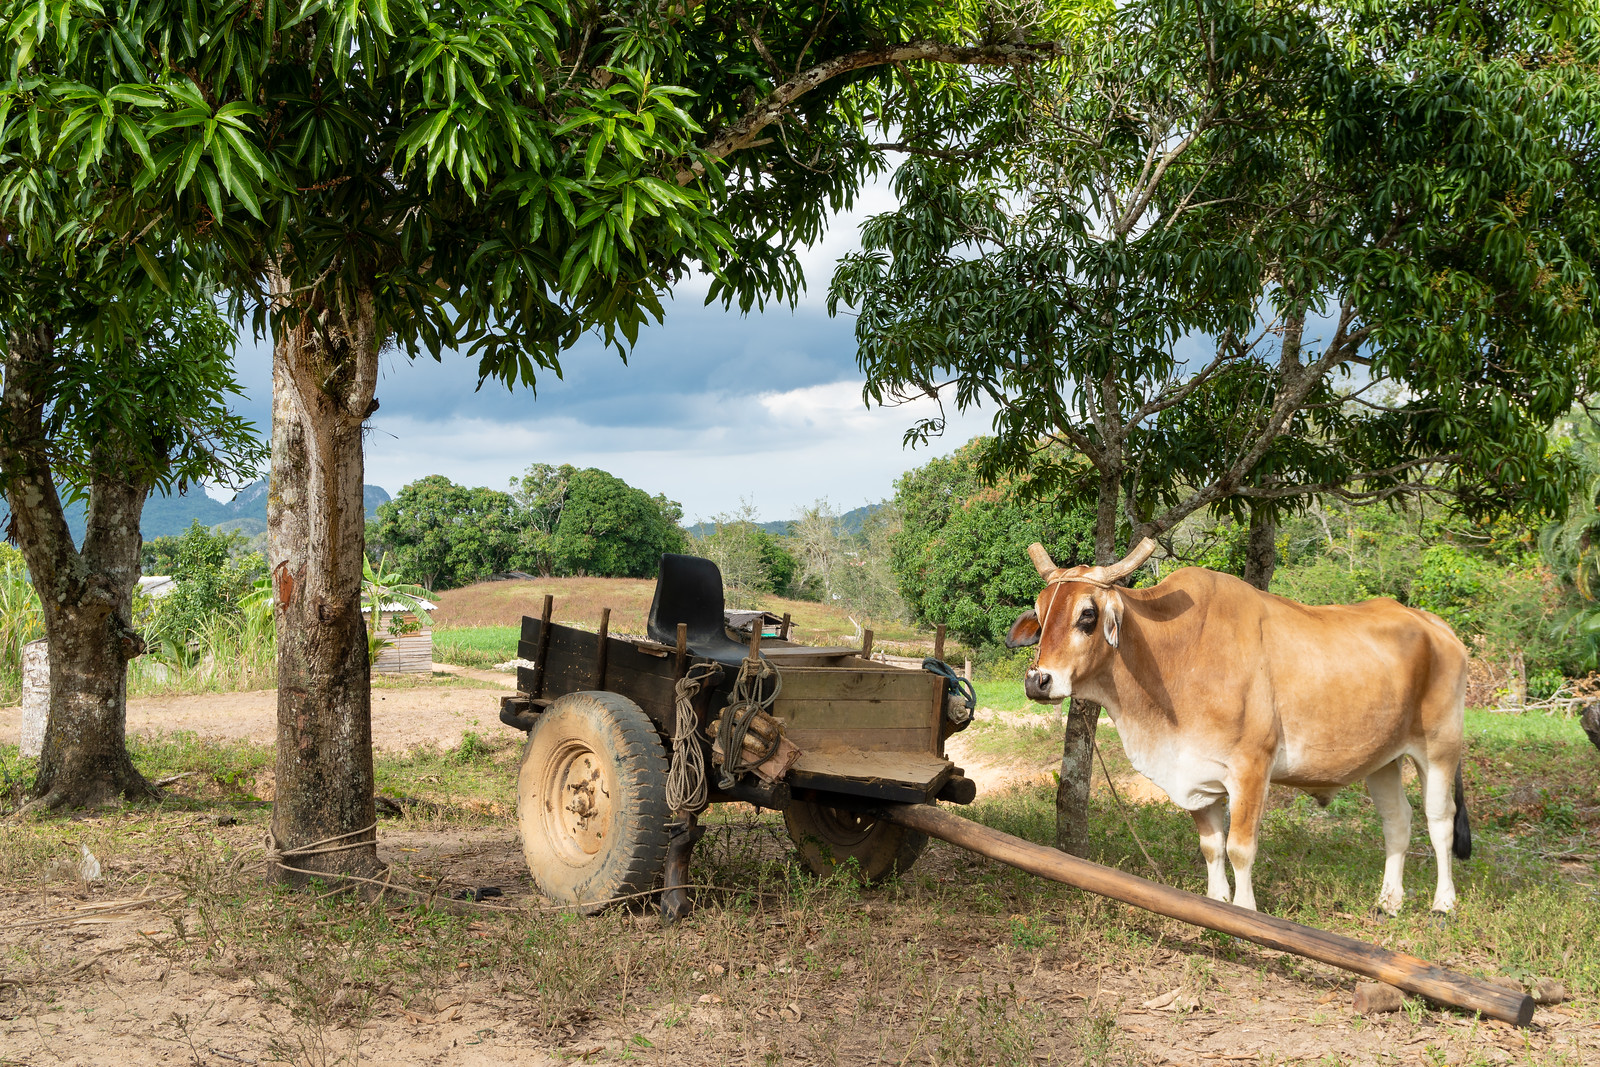 This oxen is having a break